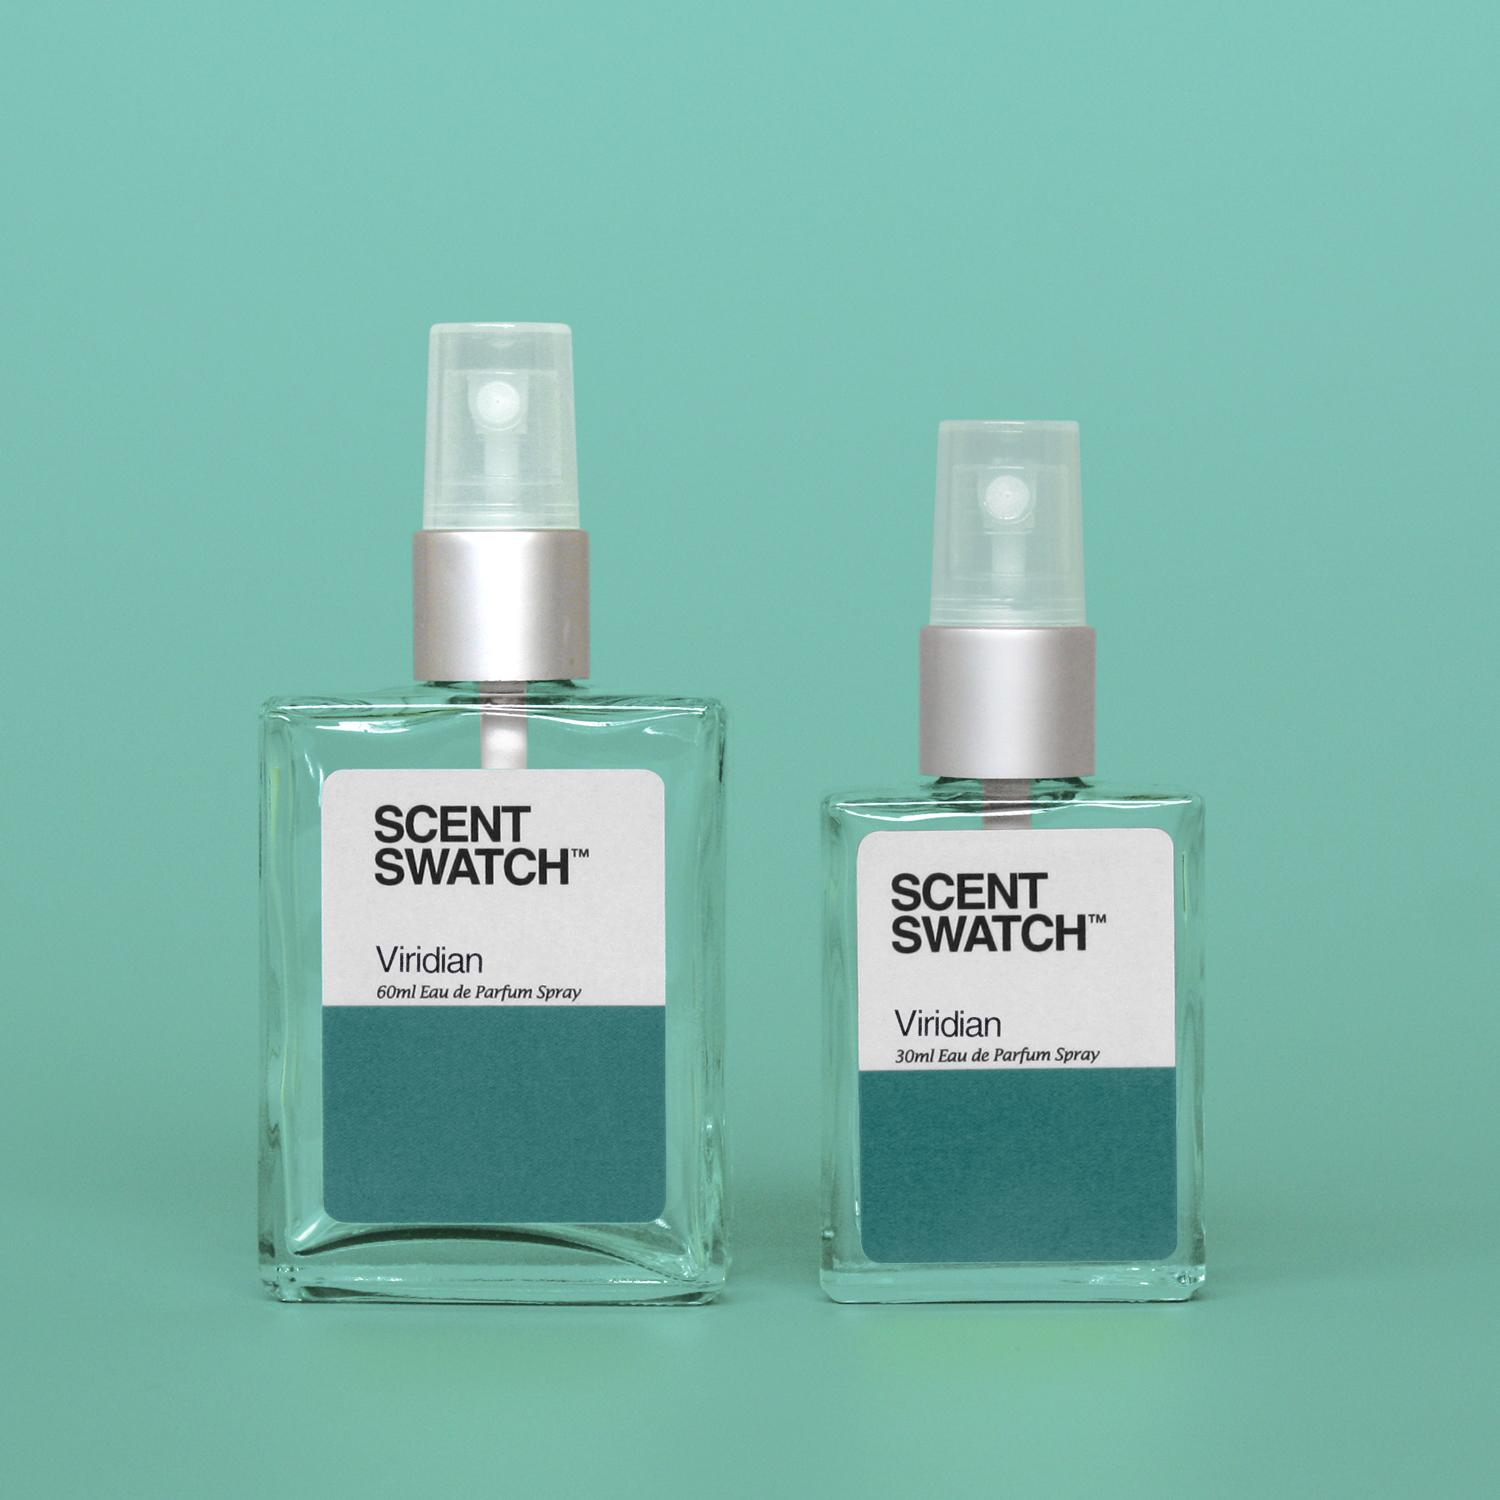 Scent Swatch Viridian Perfume for Men